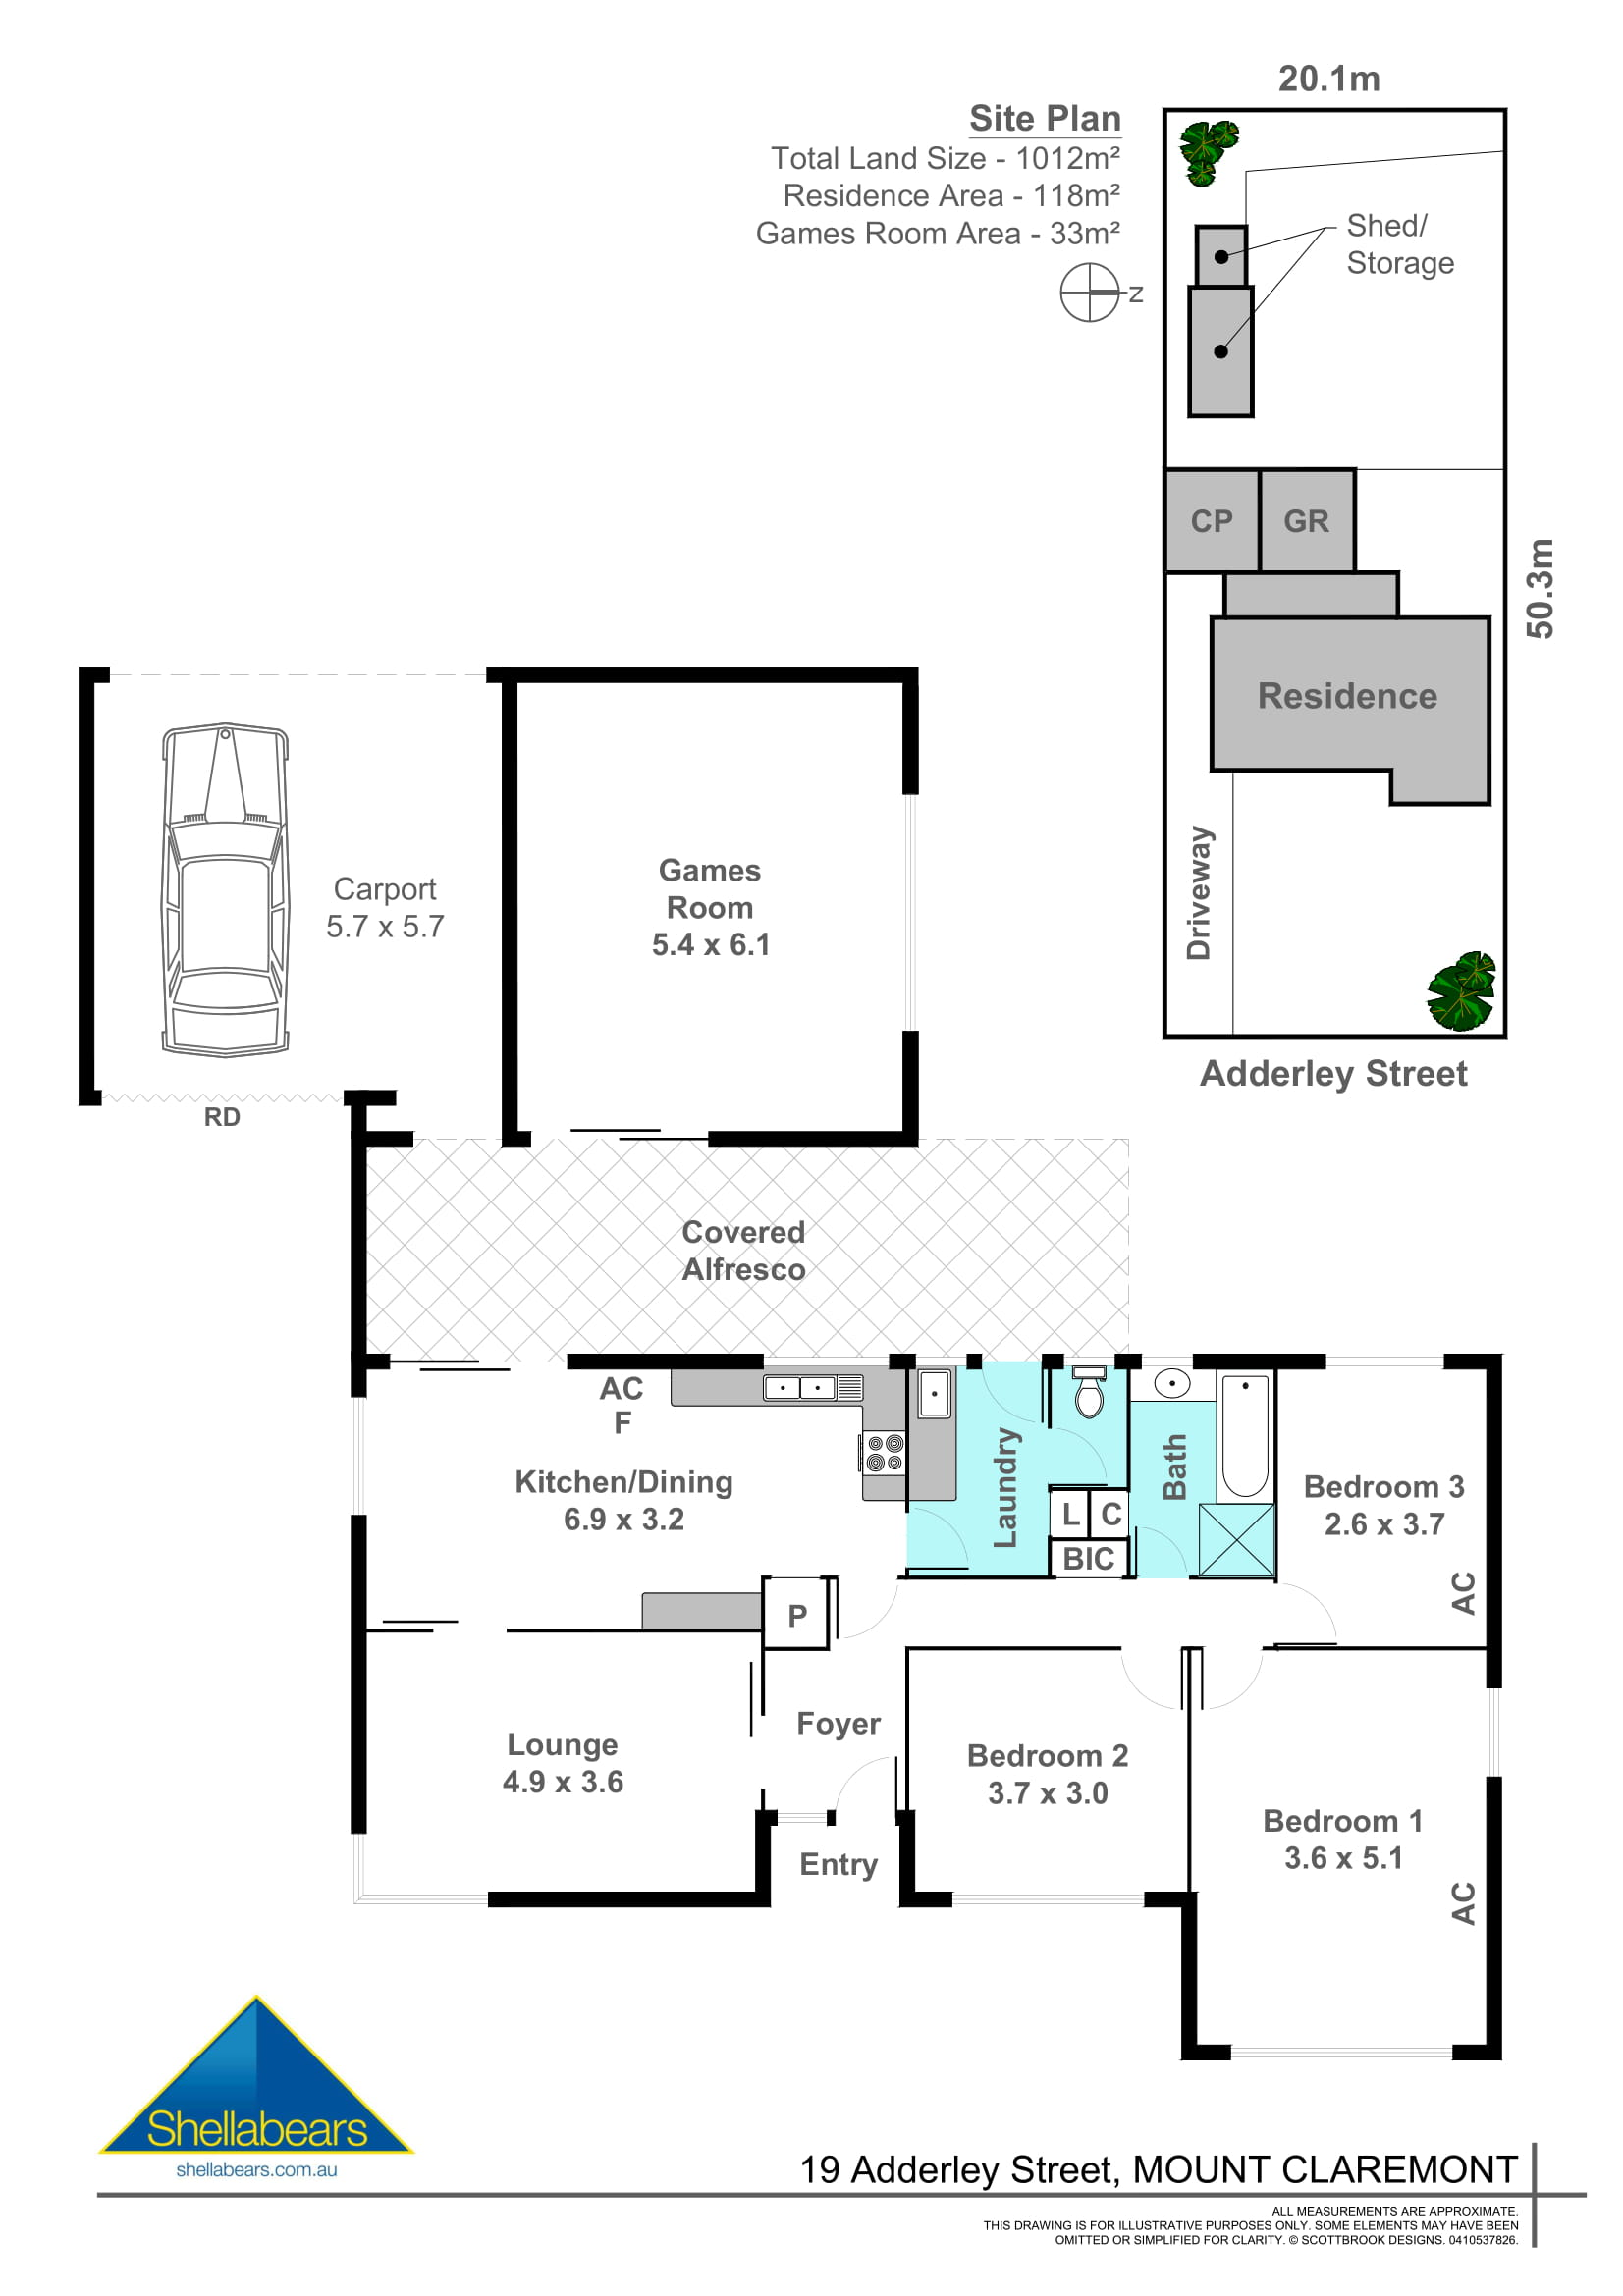 Property floorplan image